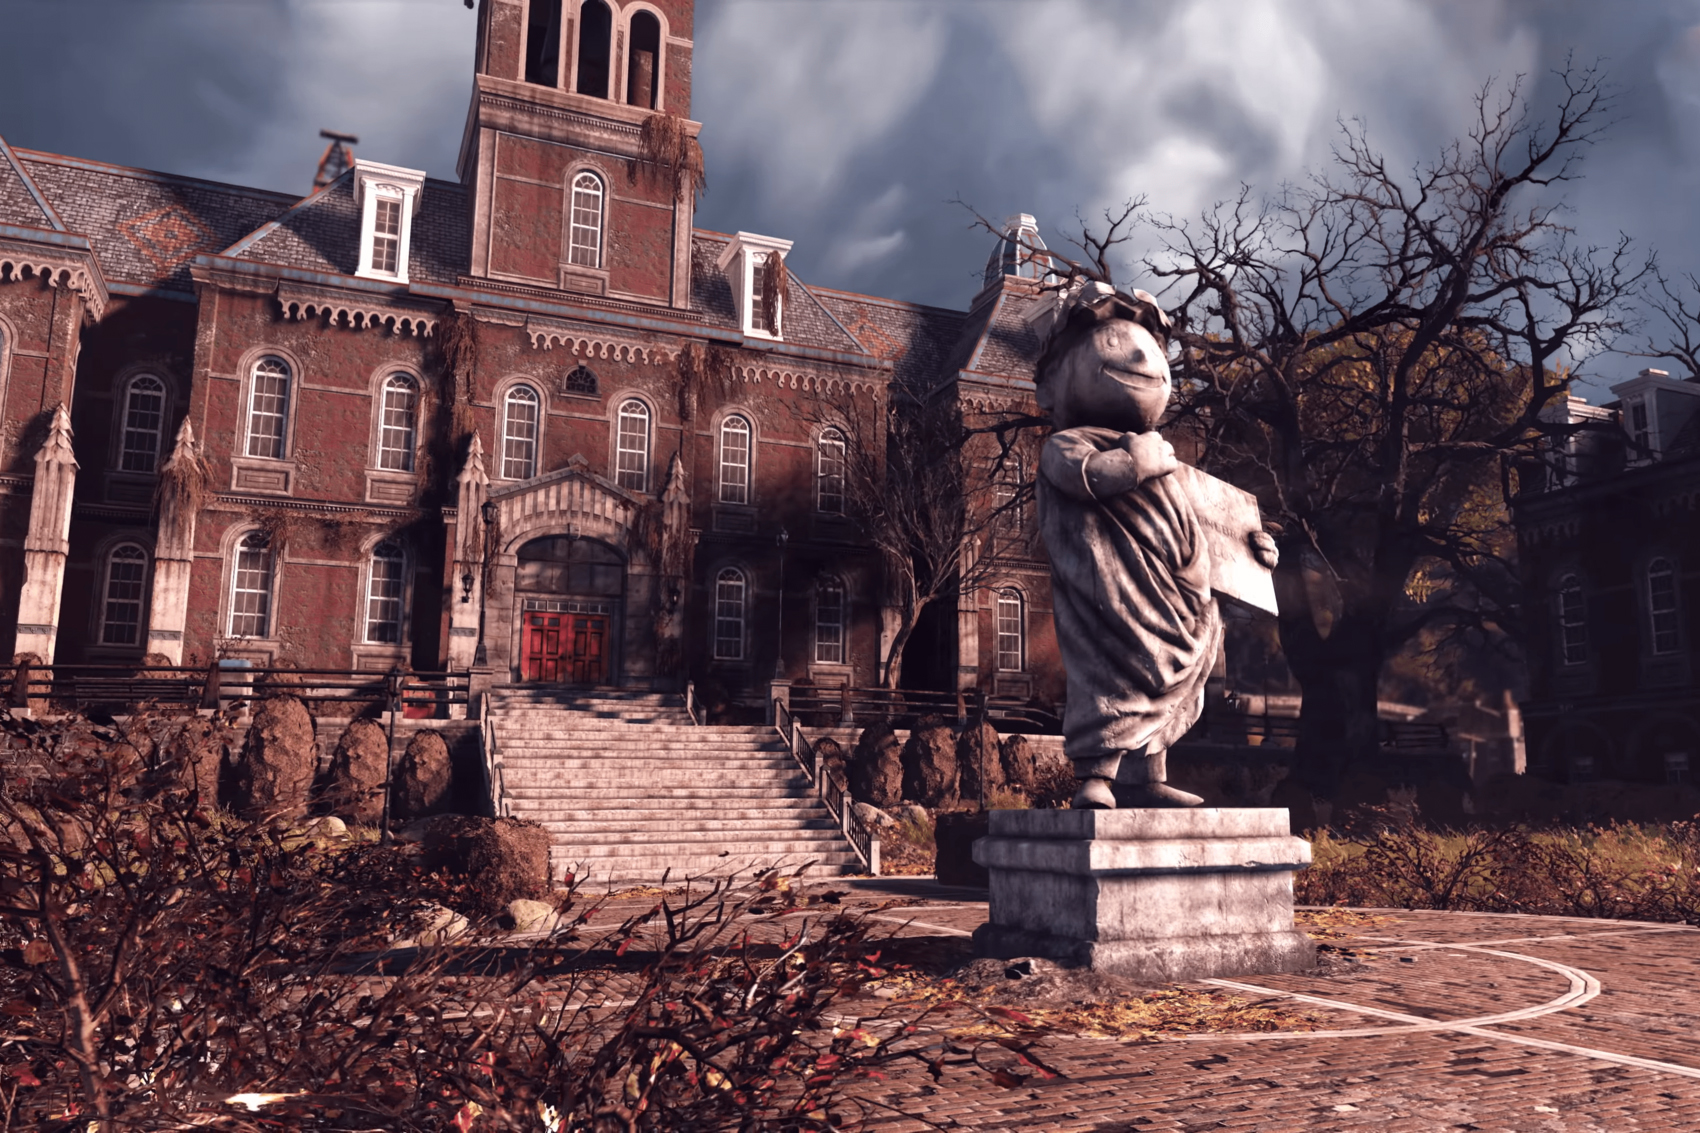 WVU researchers to study Fallout 76 gamers' perceptions of West Virginia